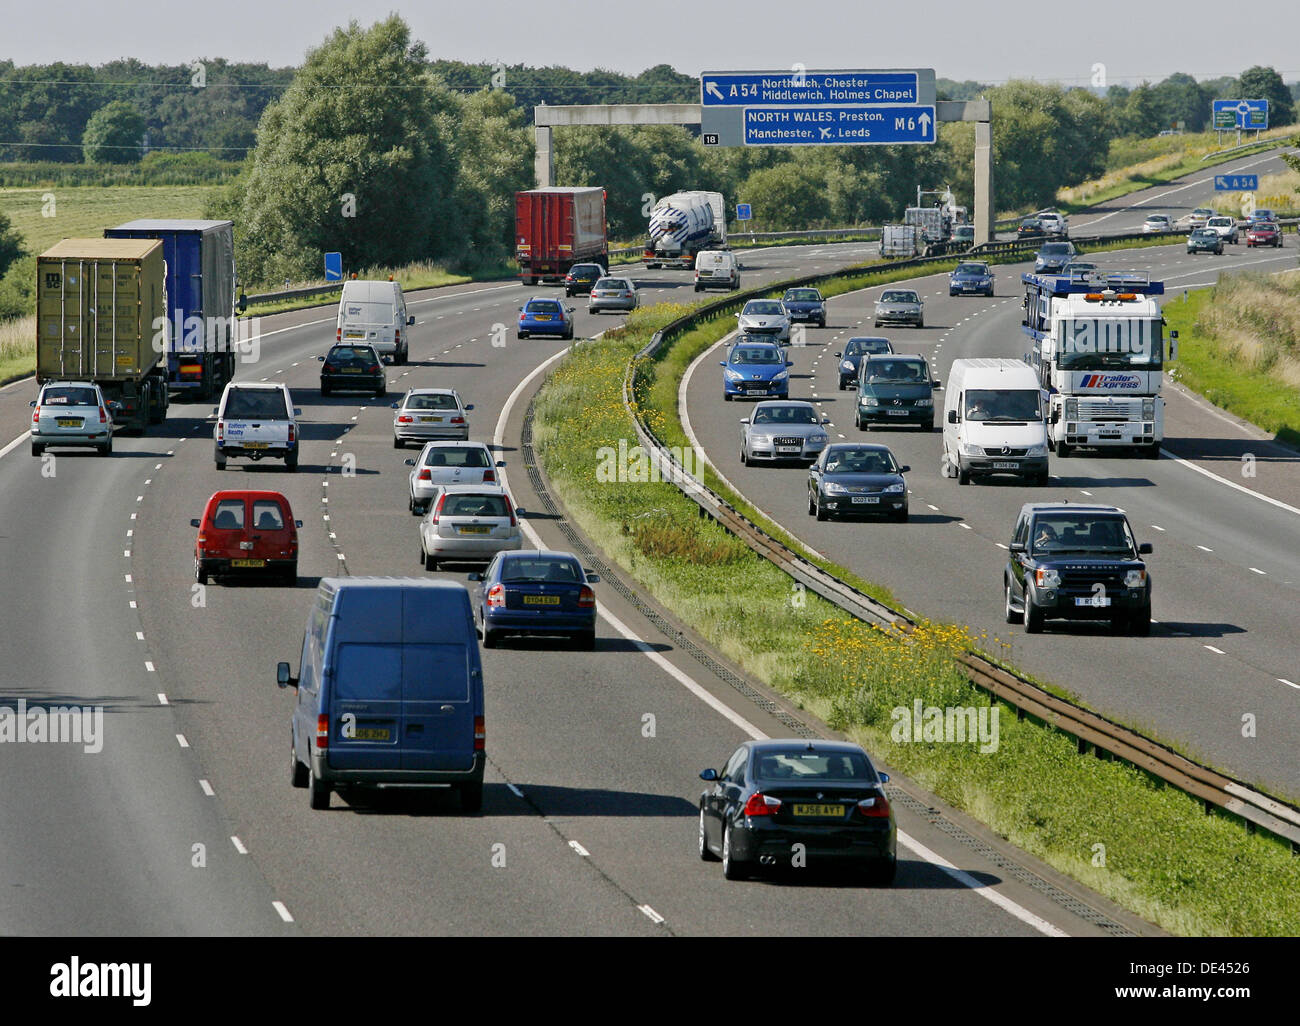 m6-motorway-cheshire-england-uk-DE4526.j